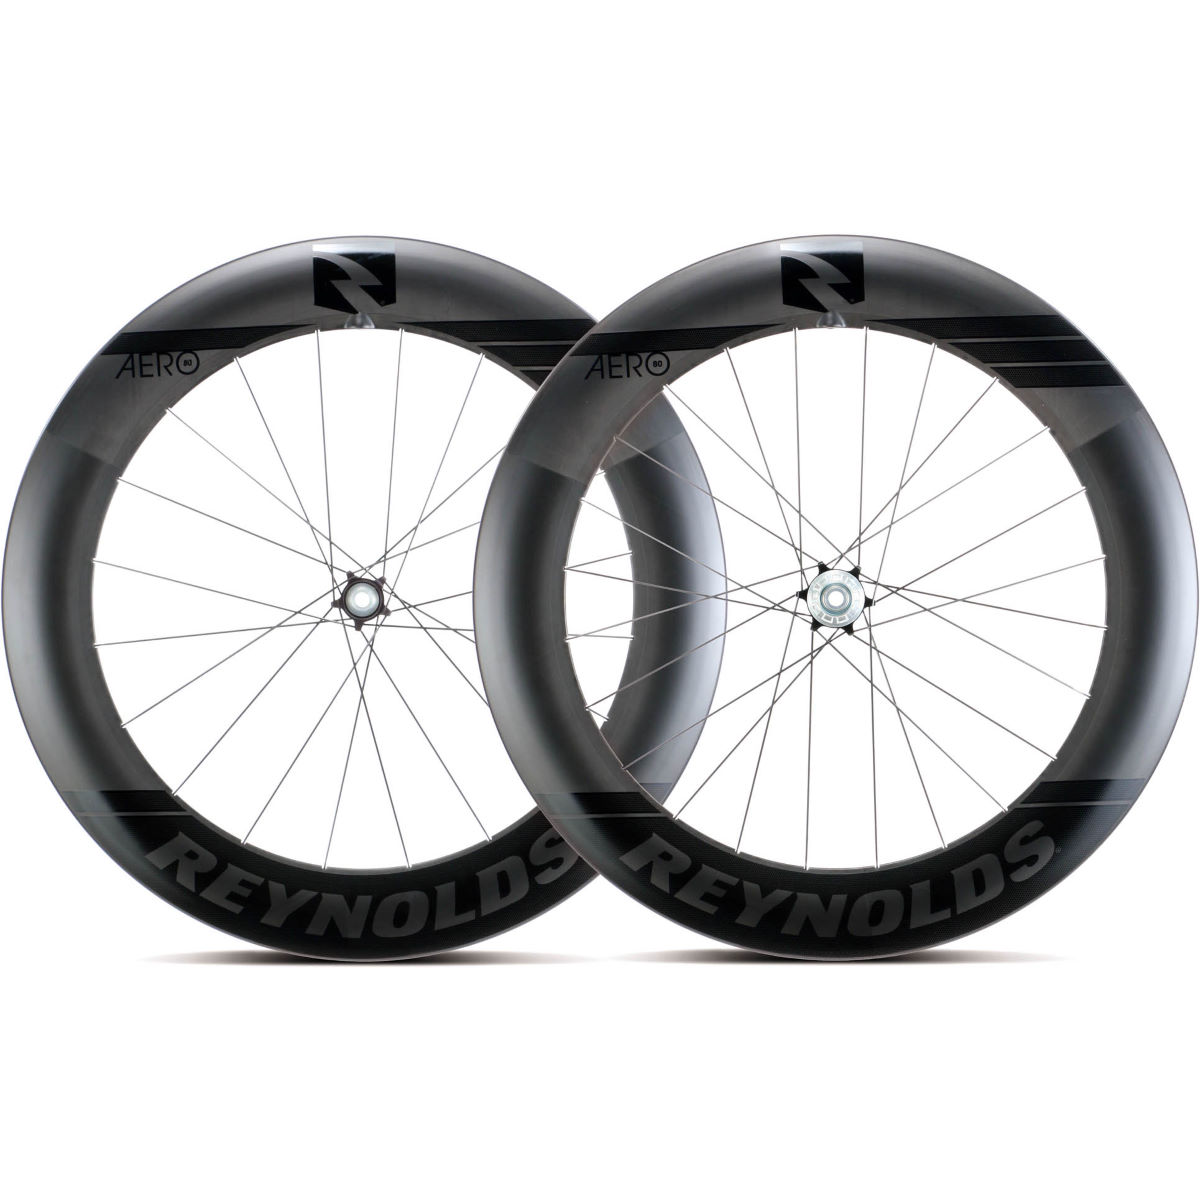 Reynolds Reynolds Aero 80 Black Label Carbon Disc Road Wheelset   Wheel Sets